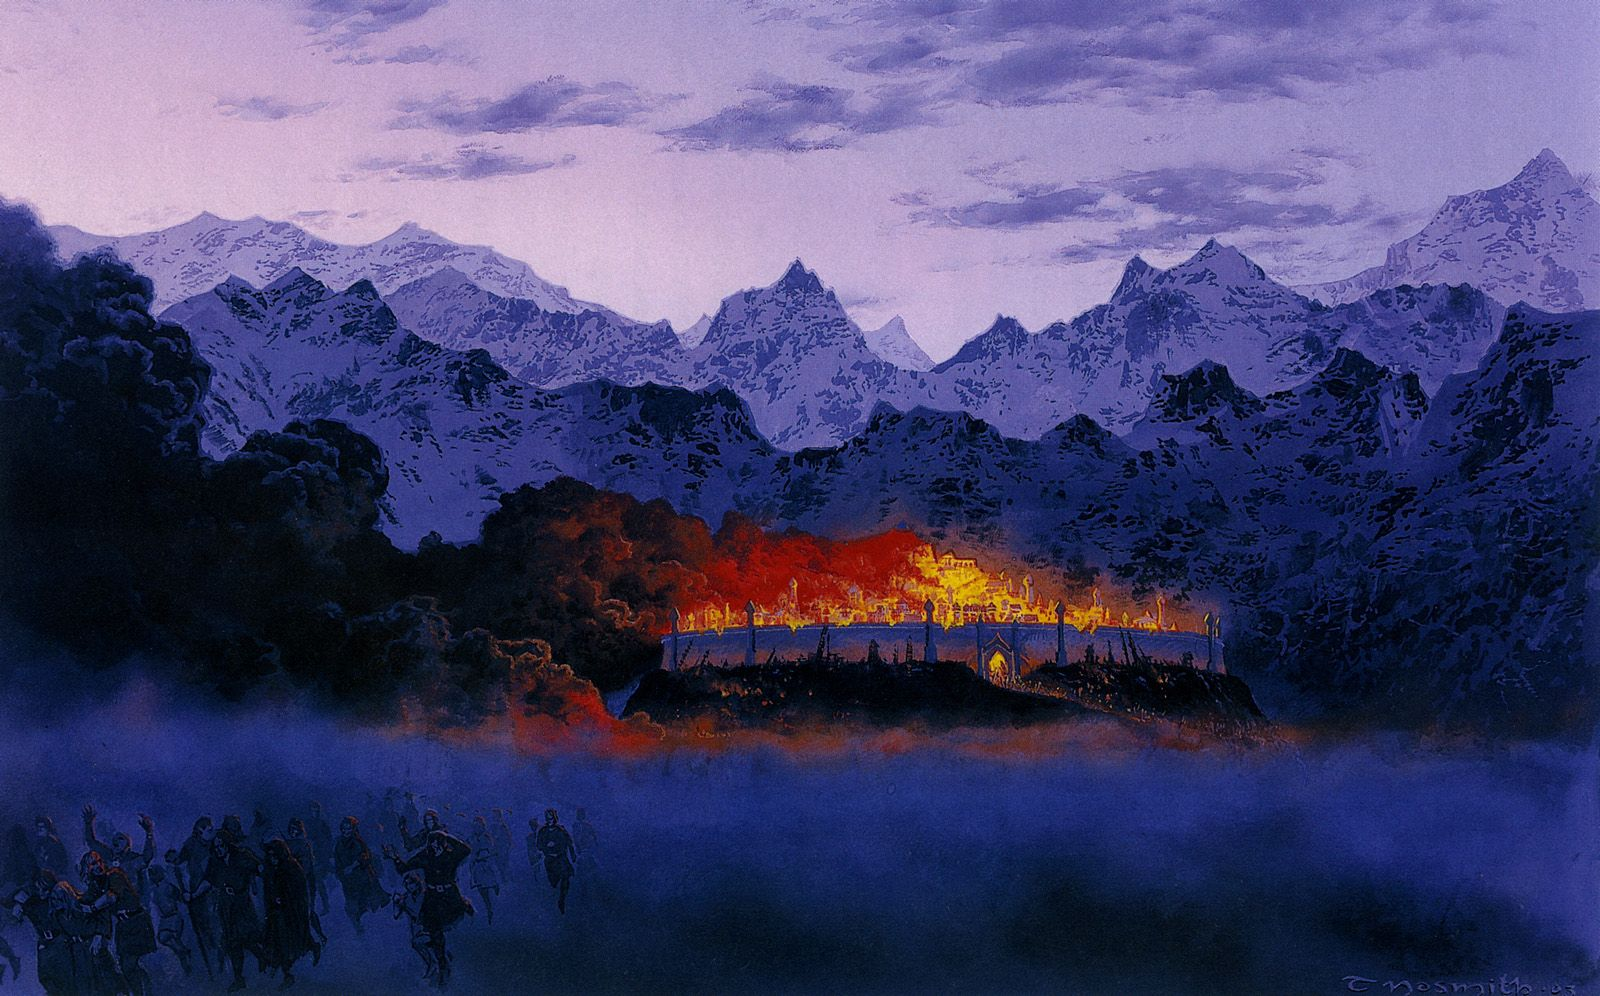 The Fall of Gondolin by Ted Nasmith